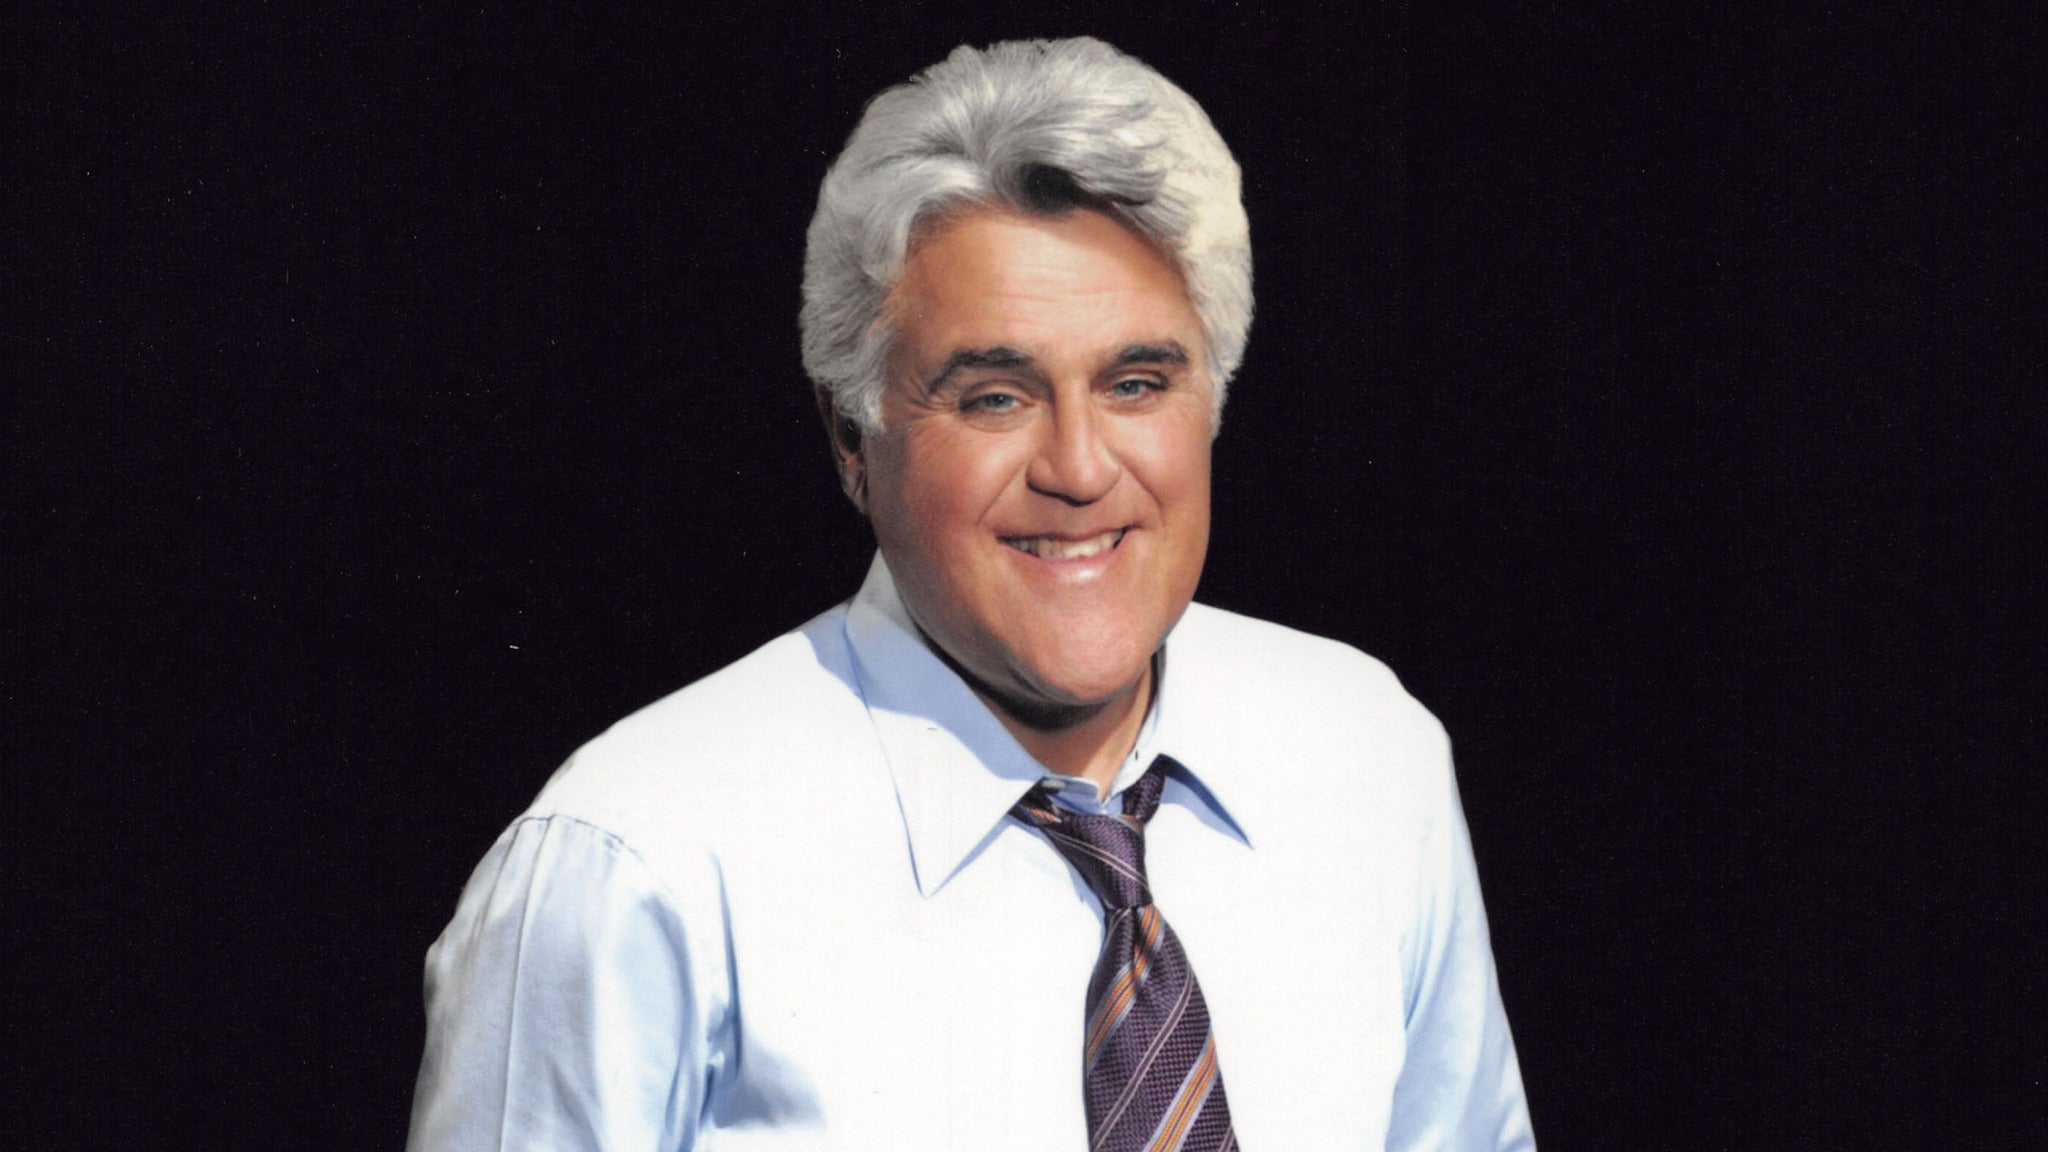 Jay Leno at Bergen Performing Arts Center